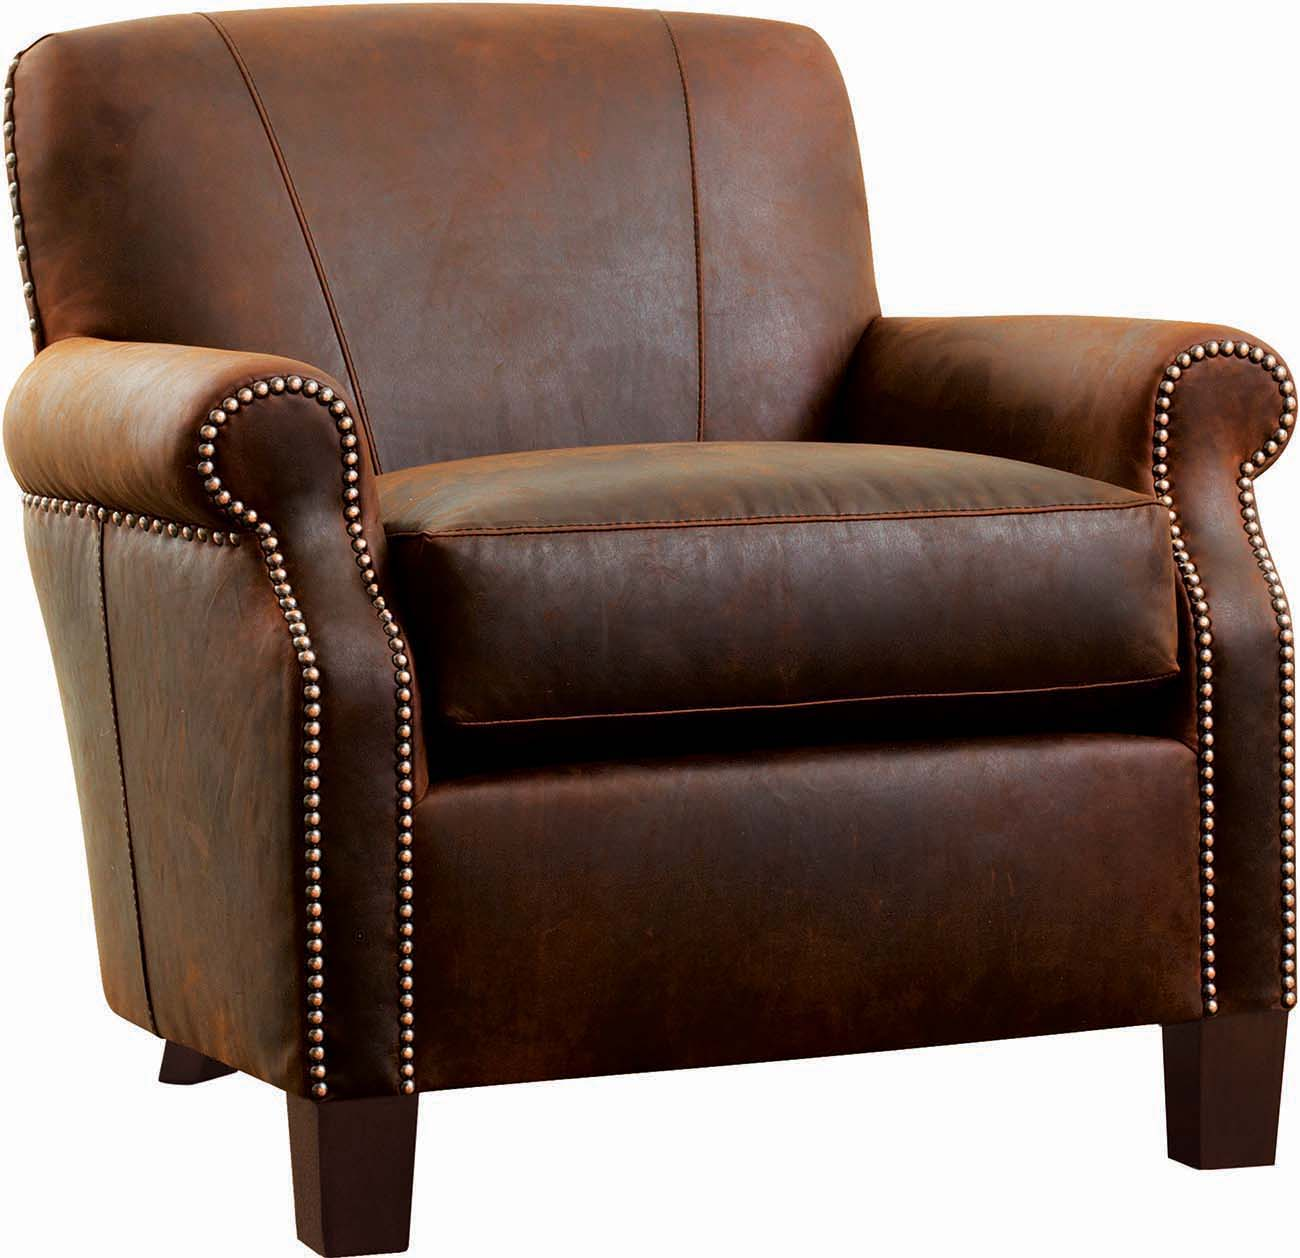 Beacon Club Chair Upholstery Leather Collection Stickley Furniture